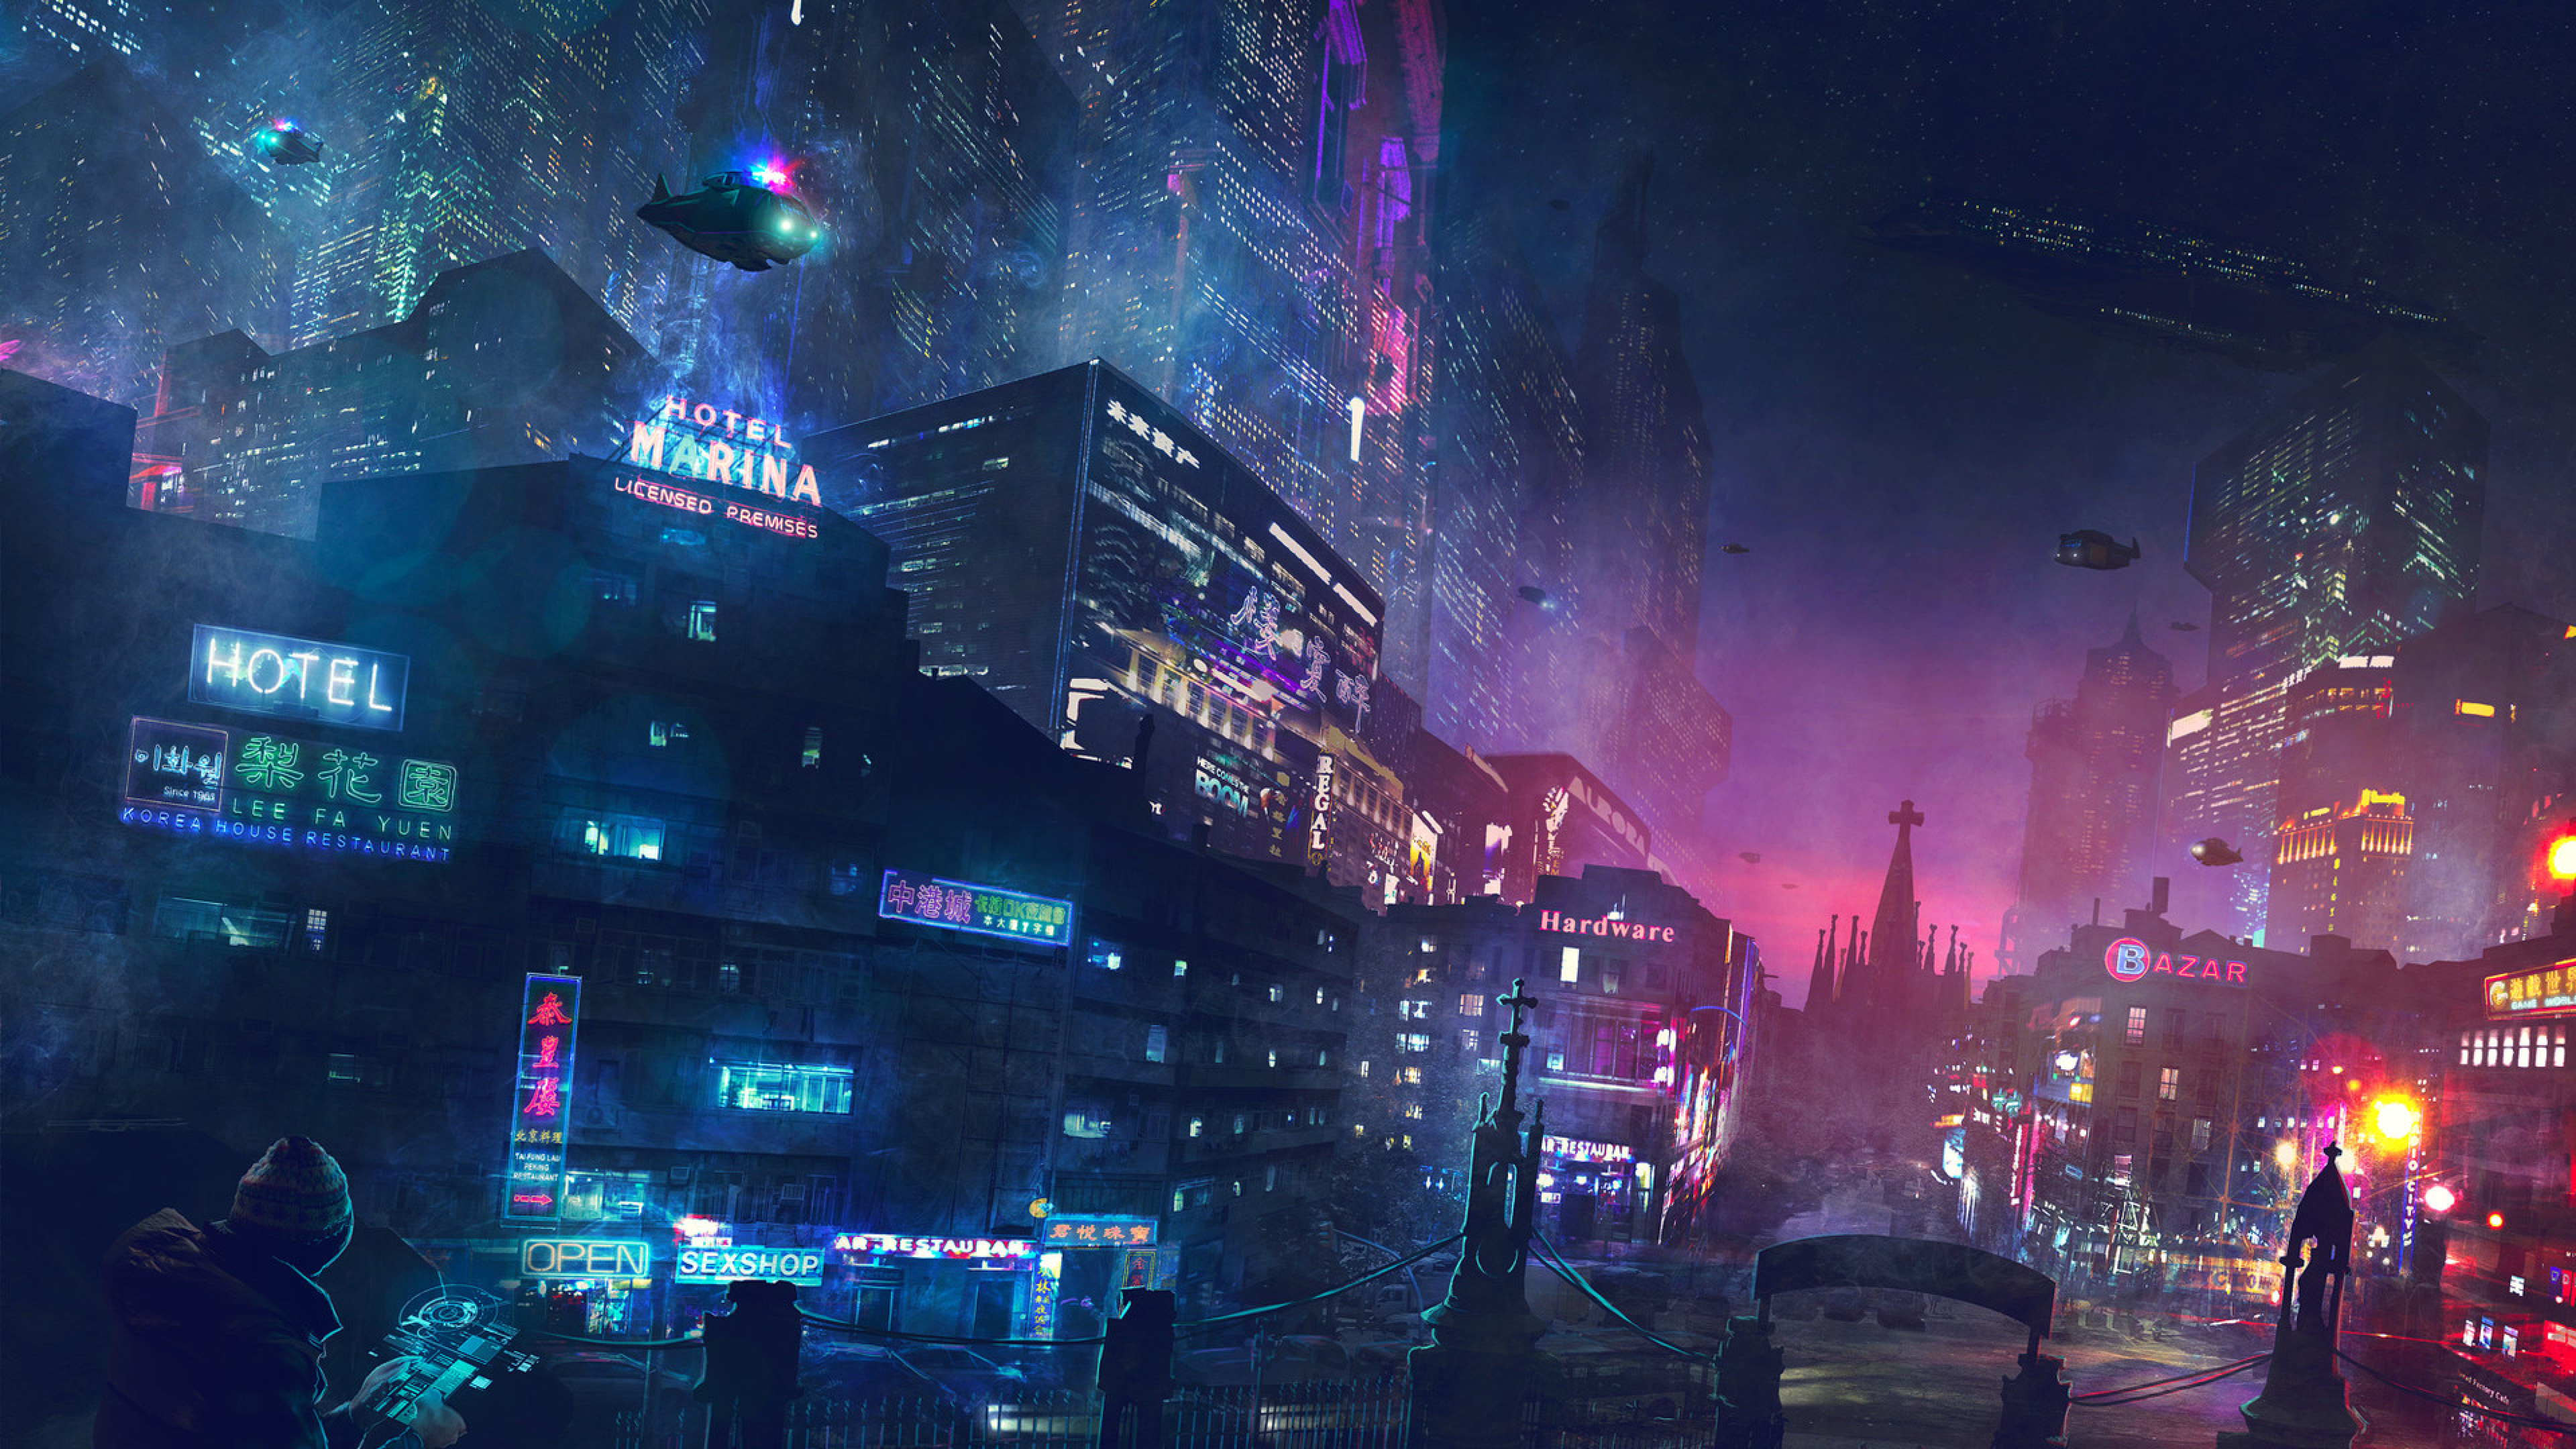 Cyberpunk 2077 Backgrounds Posted By Samantha Peltier